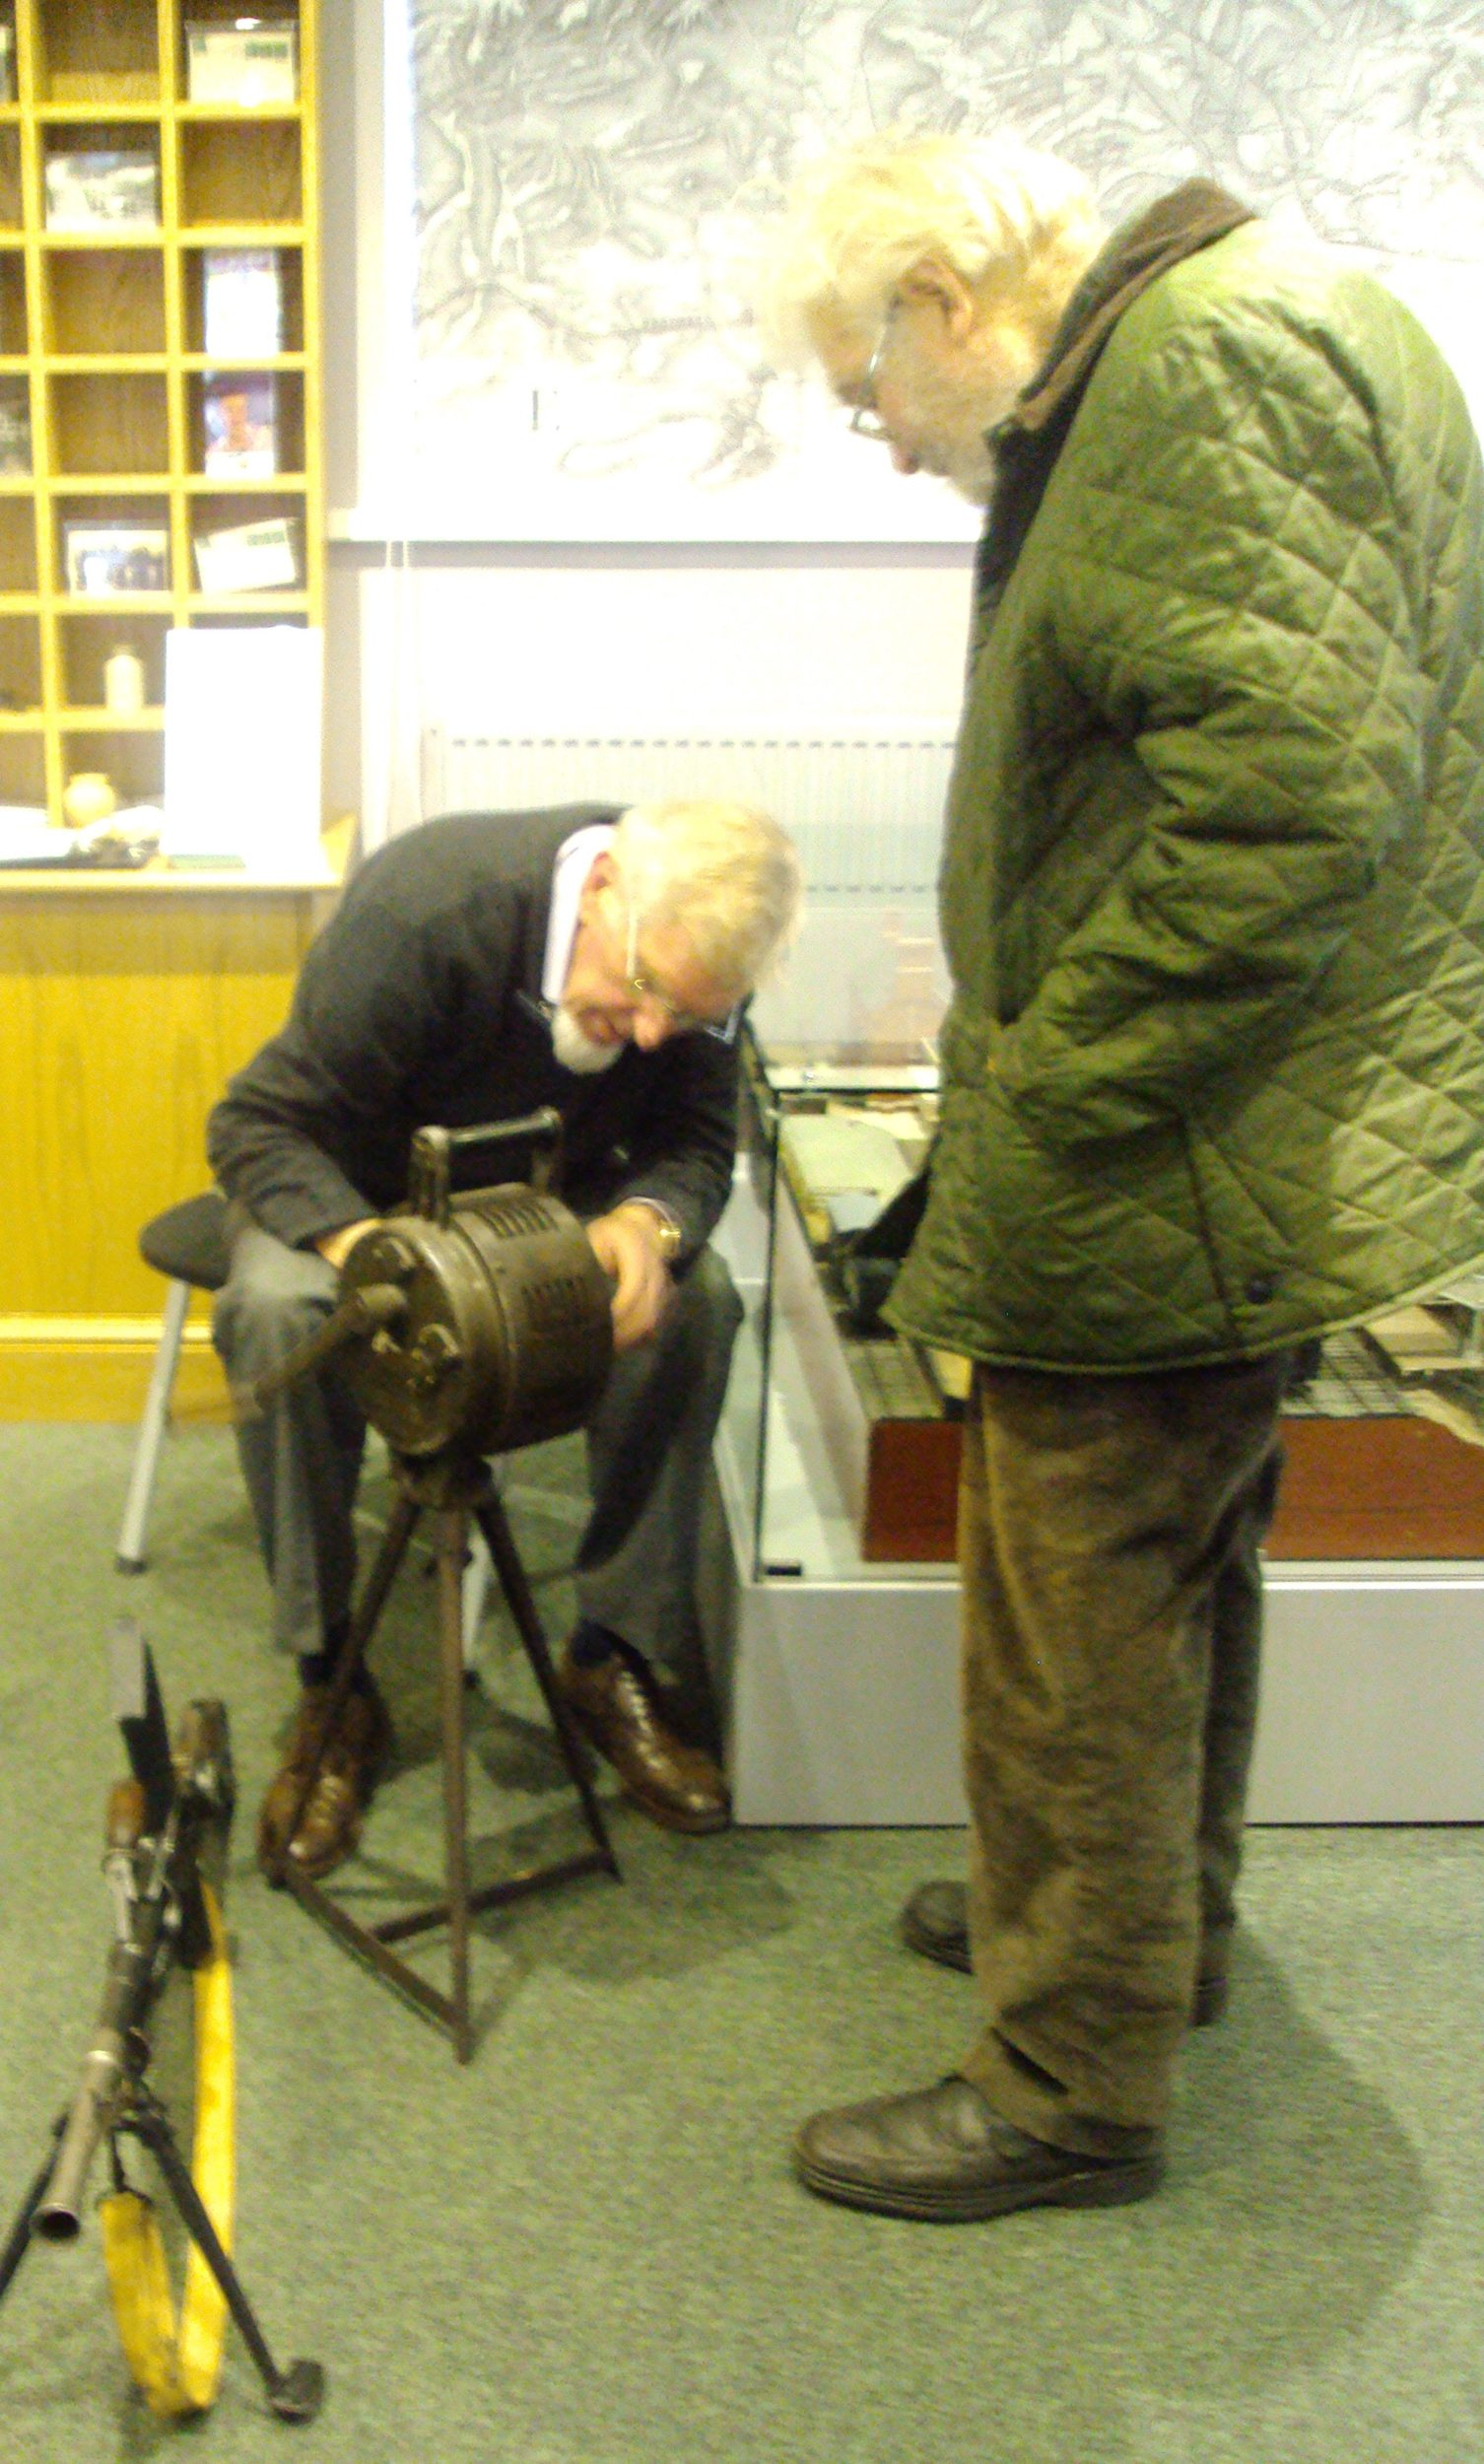 Roger Money and visitor inspecting the Air Raid Siren